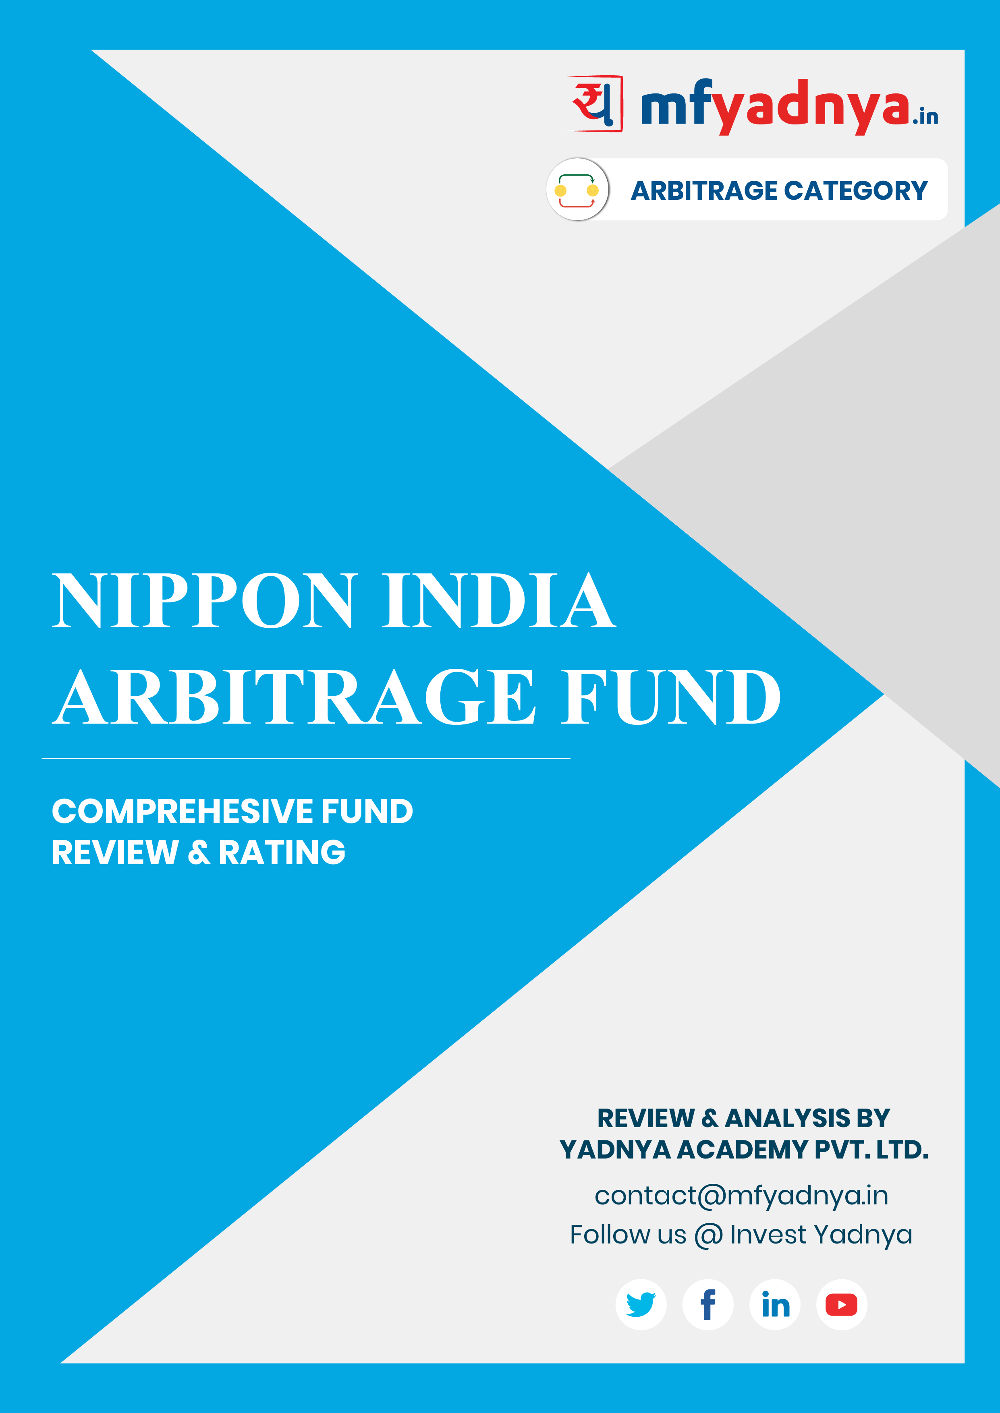 This e-book offers a comprehensive mutual fund review of Nippon India Arbitrage Fund. It reviews the fund's return, ratio, allocation etc. ✔ Detailed Mutual Fund Analysis ✔ Latest Research Reports